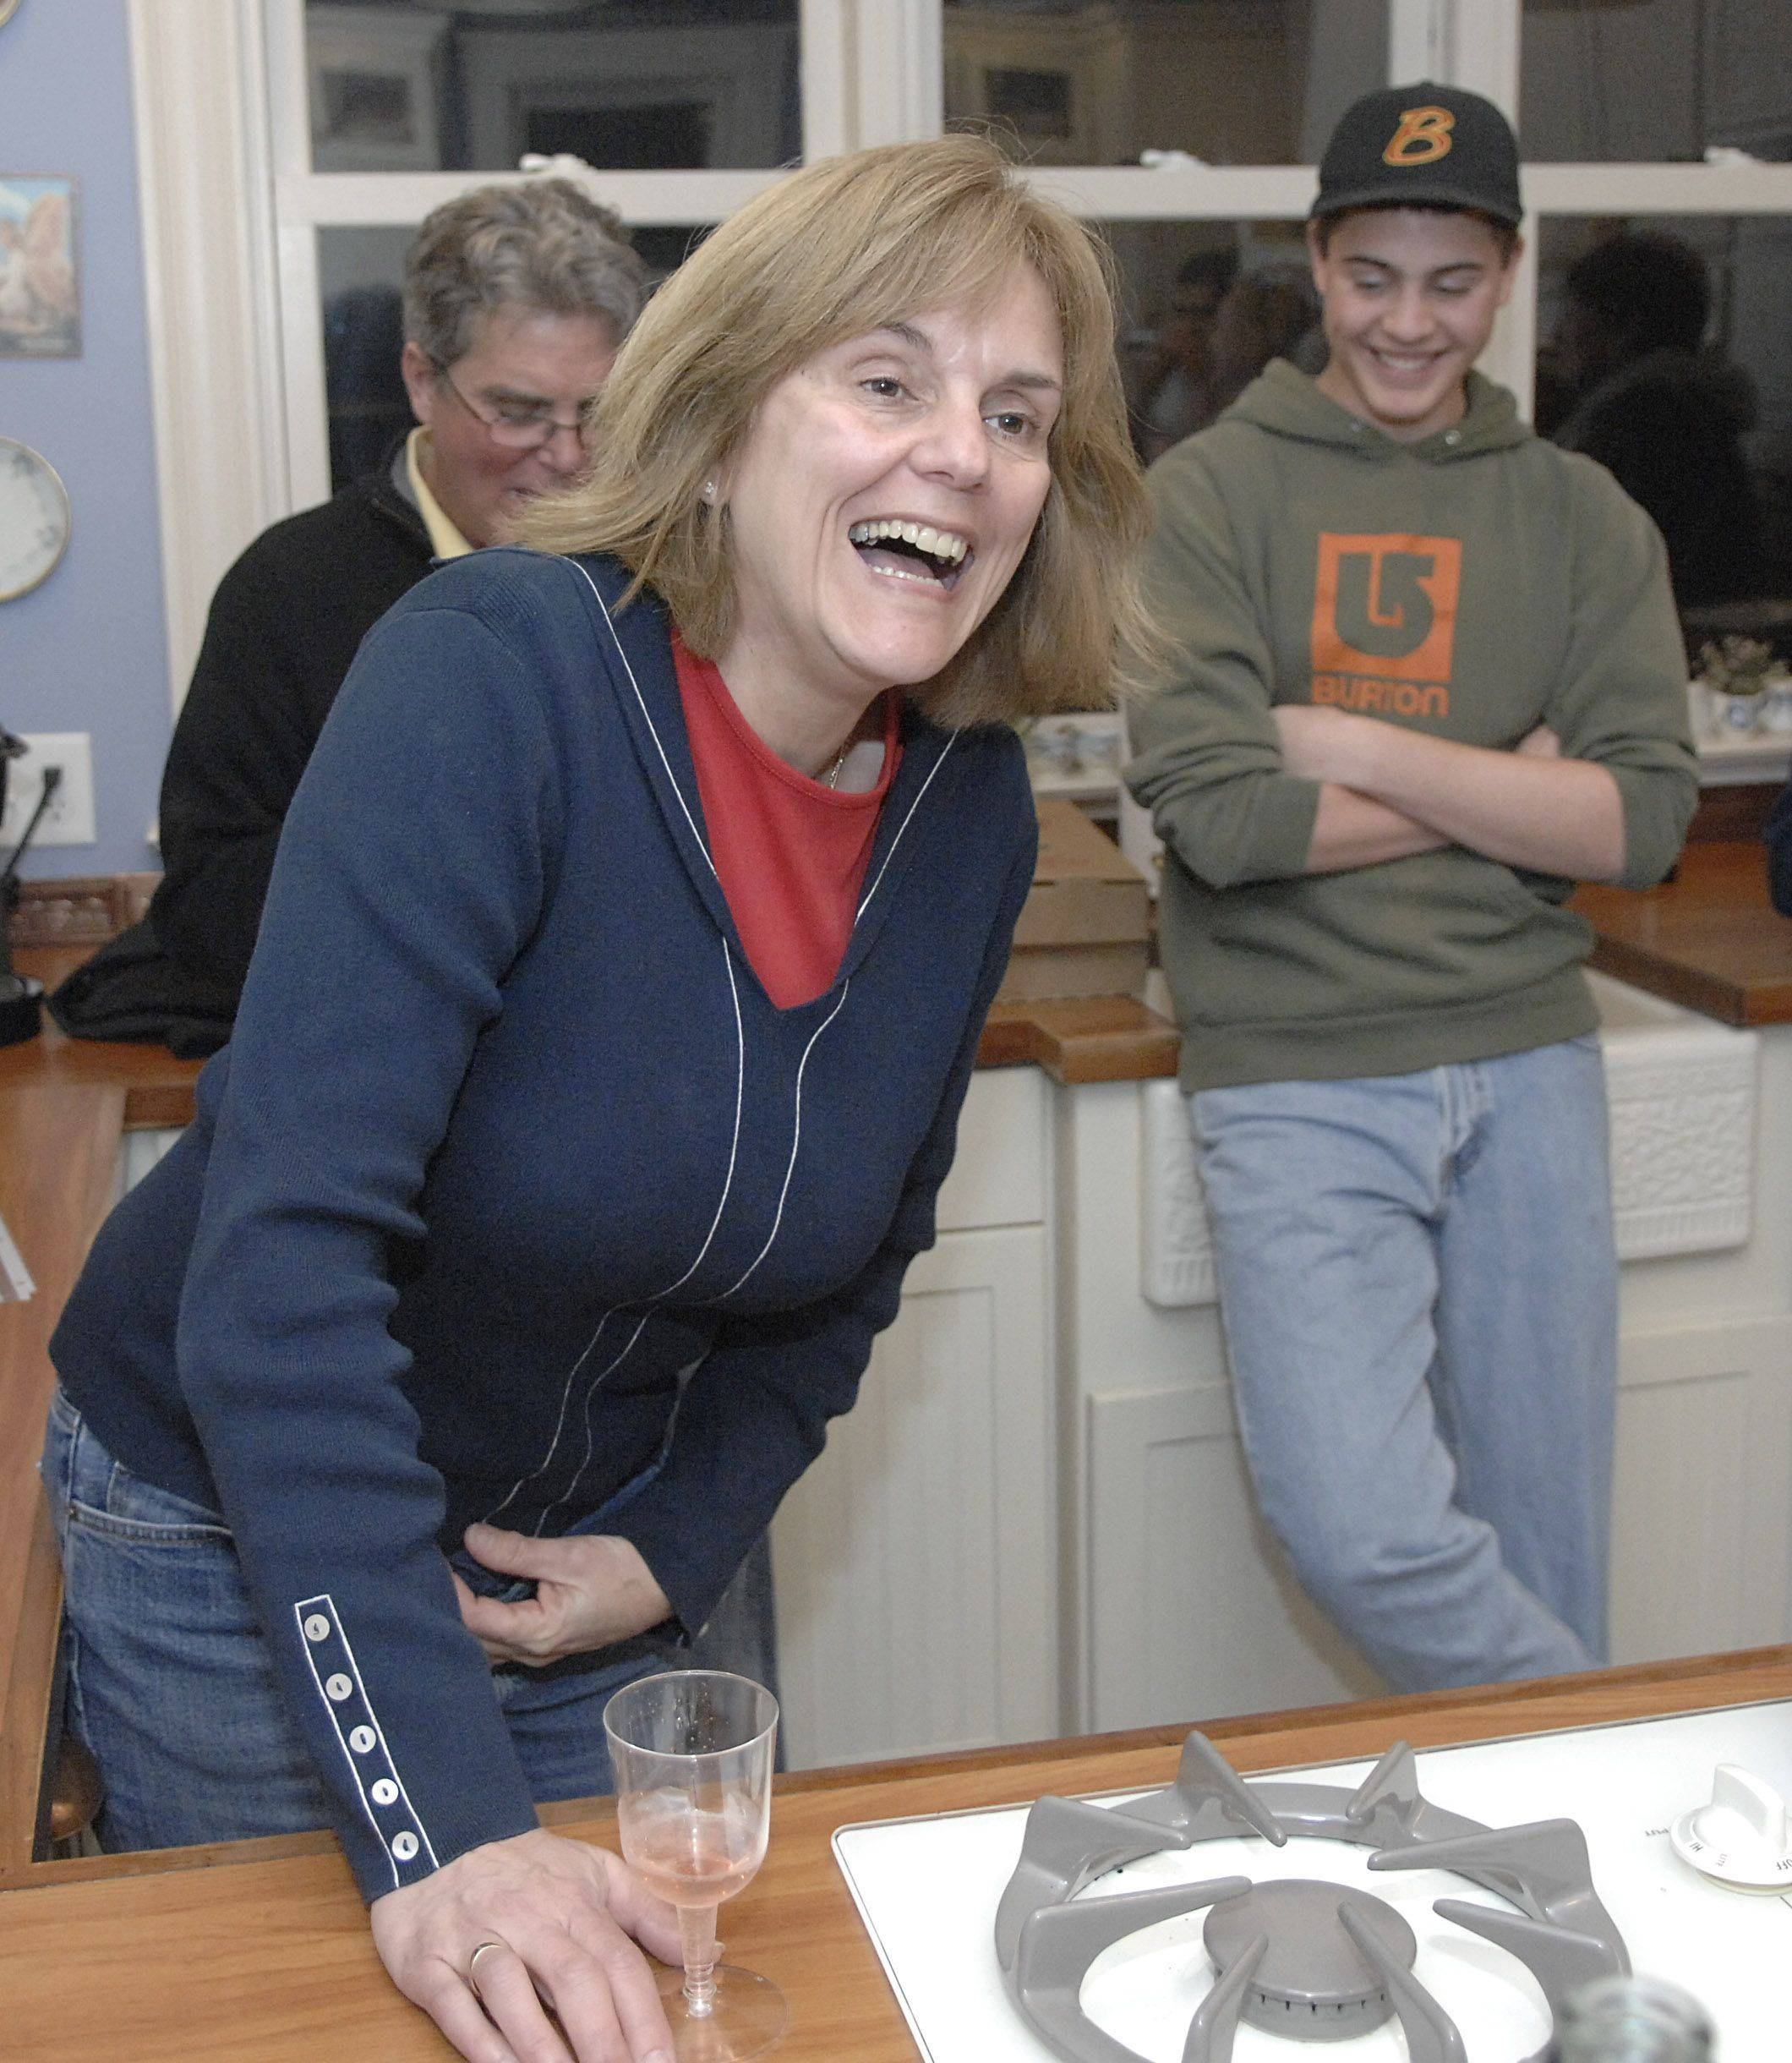 Batavia 4th Ward alderman candidate Susan Stark jokes with family and friends in her Batavia home as election results come in Tuesday night. Her husband Vincent Gatto and son Jonathan Seagren are in back.